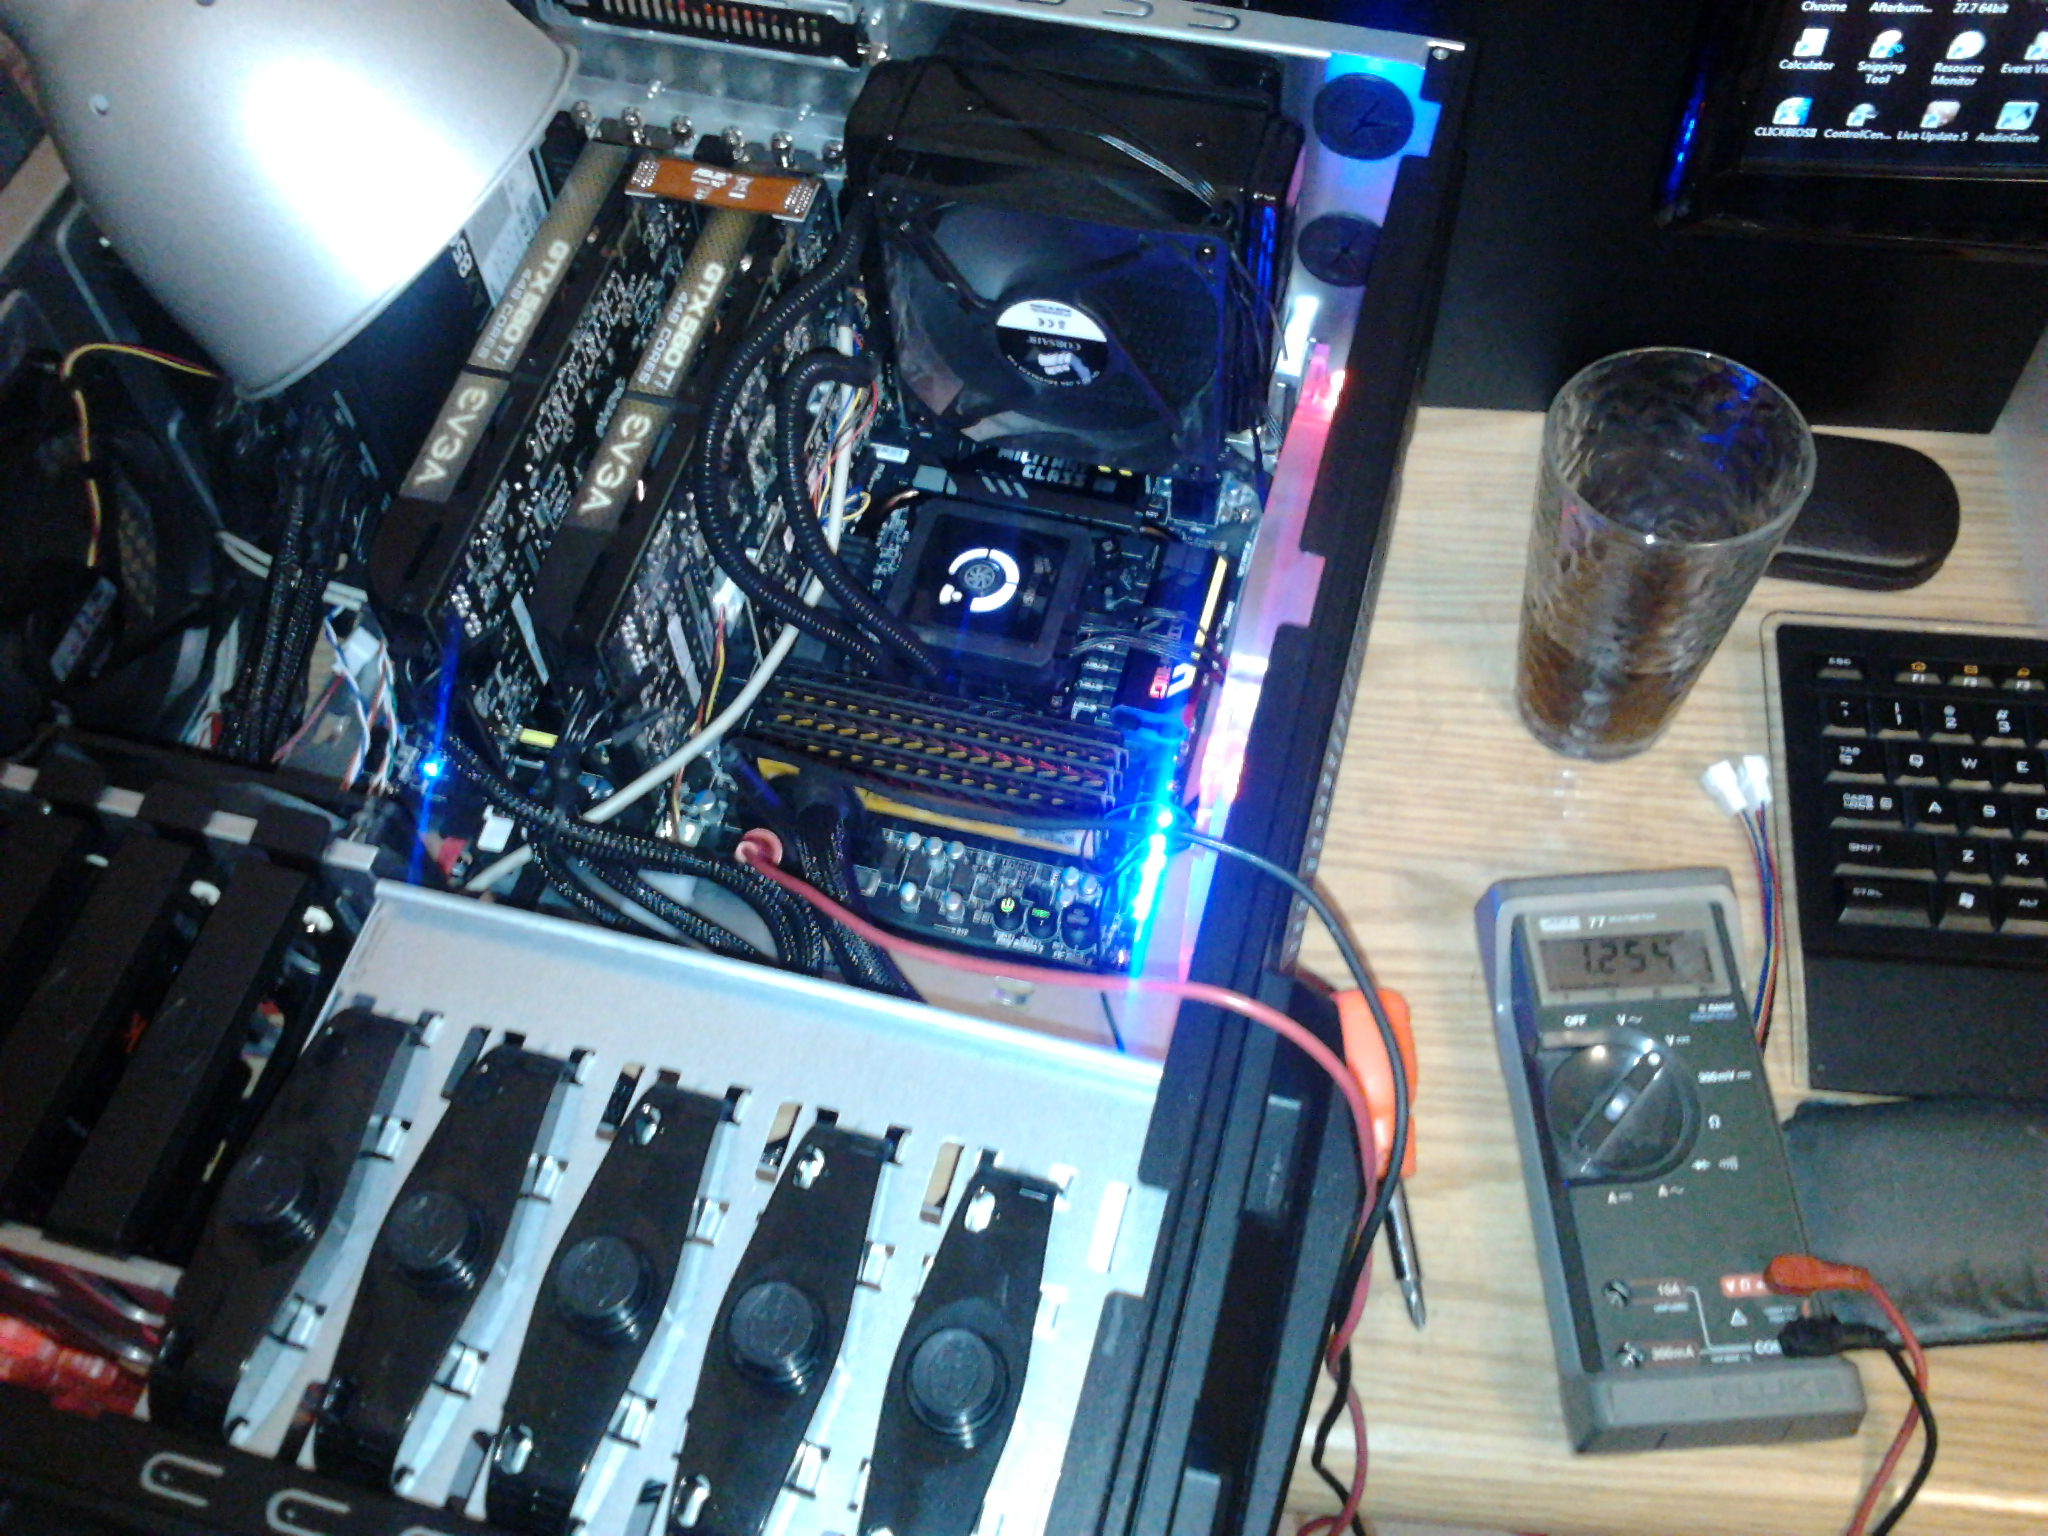 Testing and benching a new motherboard